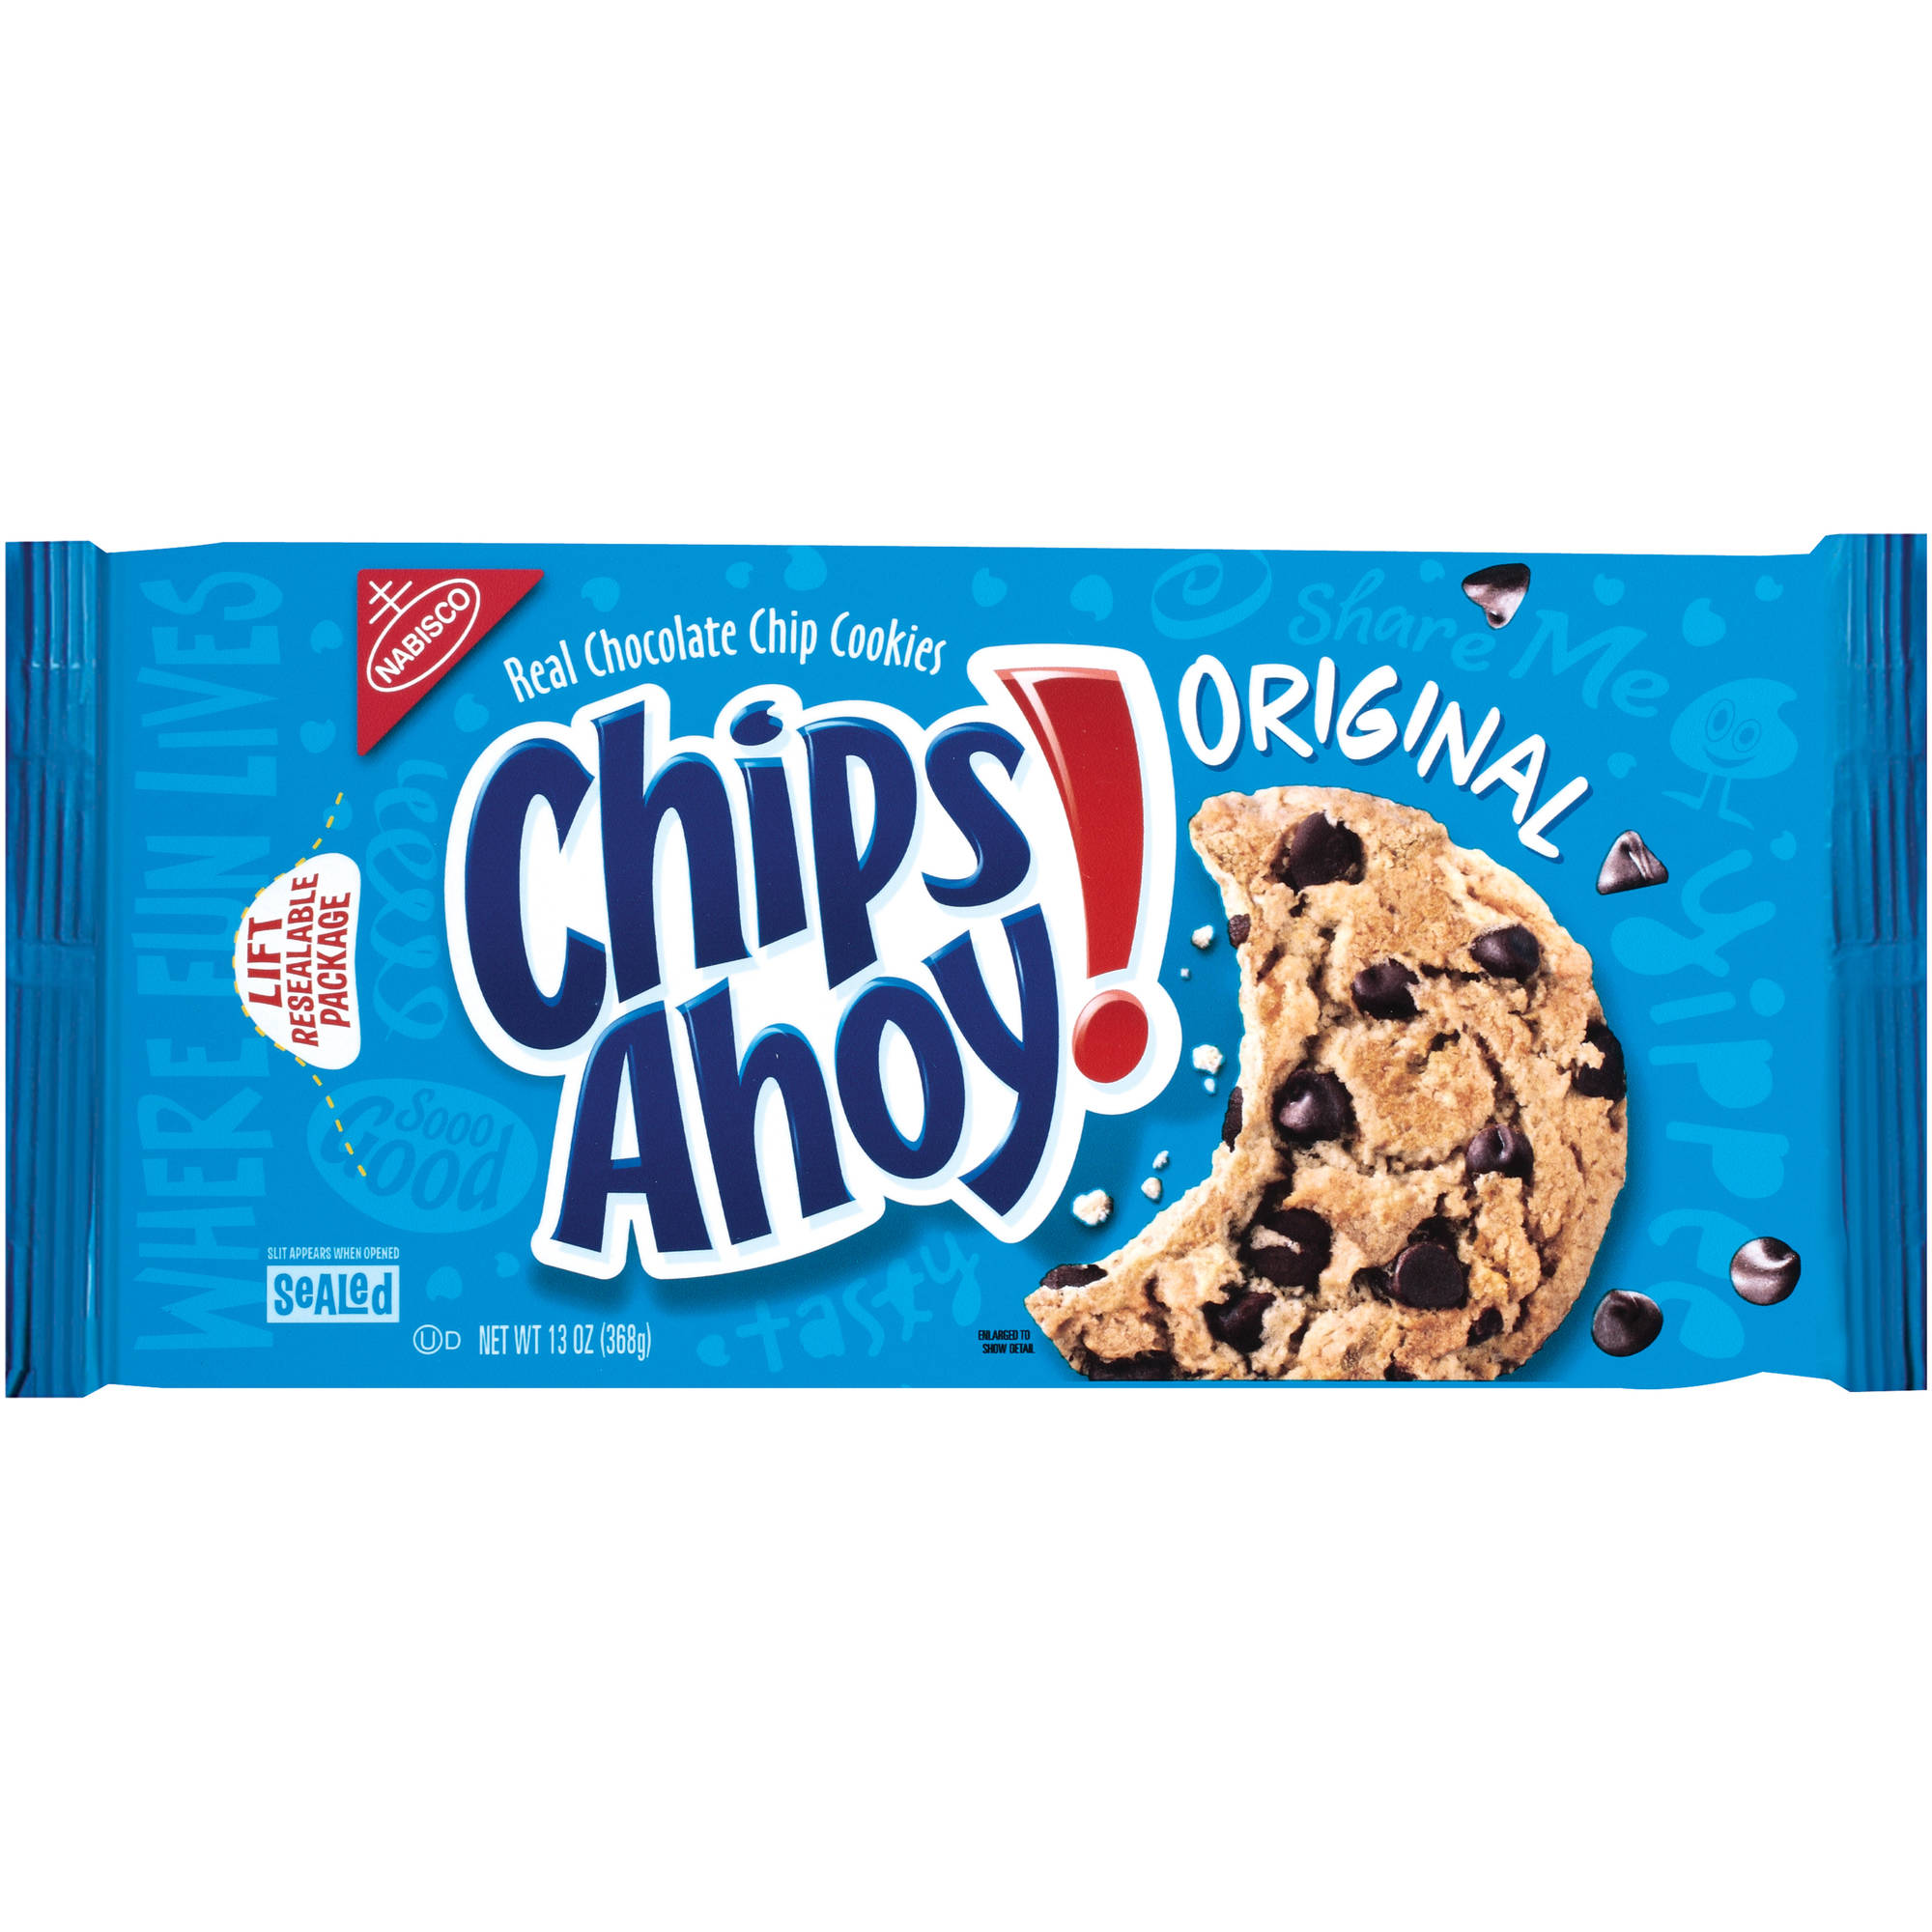 Nabisco Chips Ahoy! Original Chocolate Chip Cookies, 13 oz